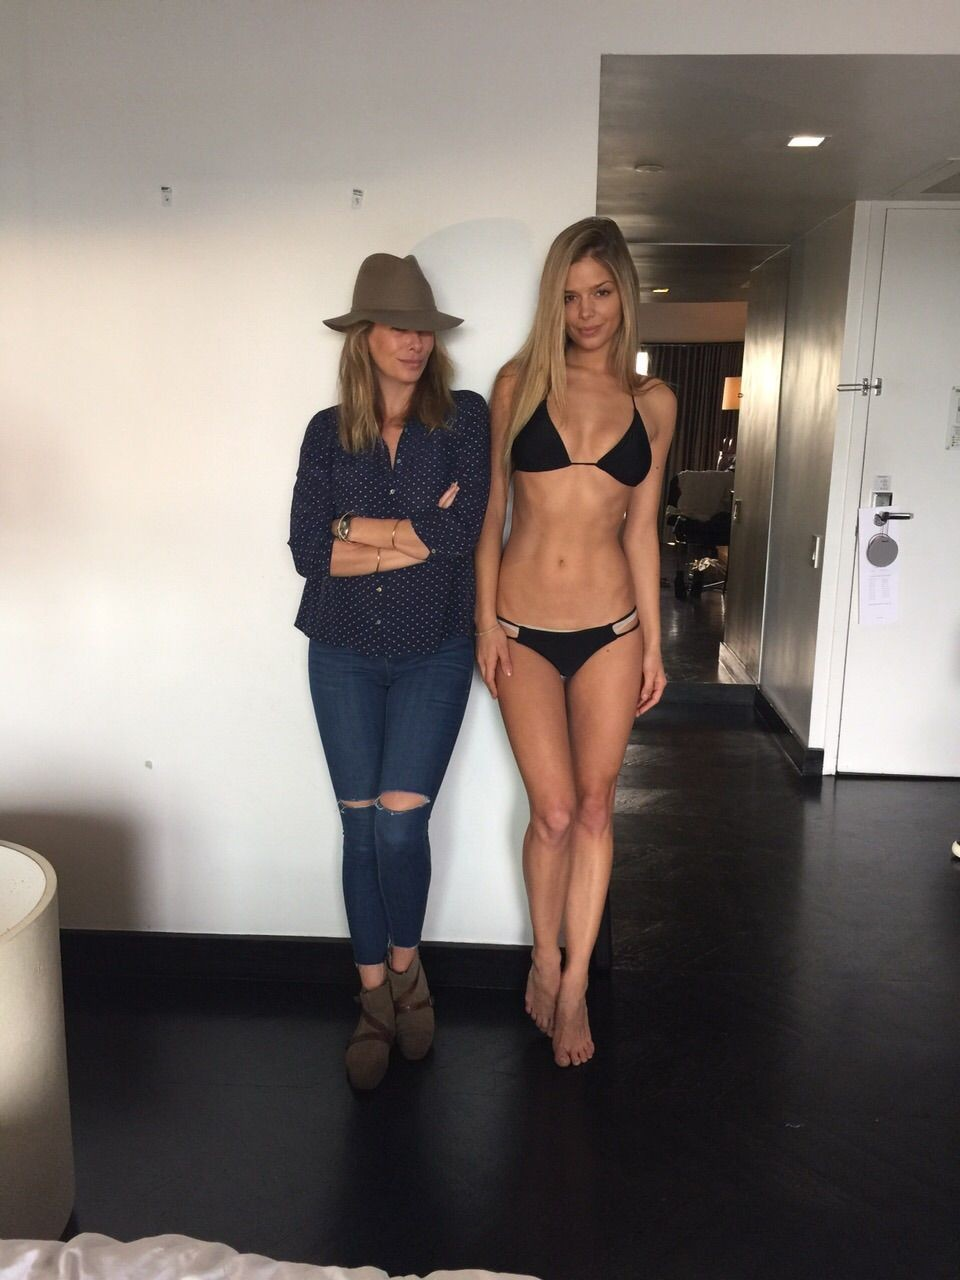 Canadian Model Danielle Knudson nude photos leaked from iCloud The Fappening